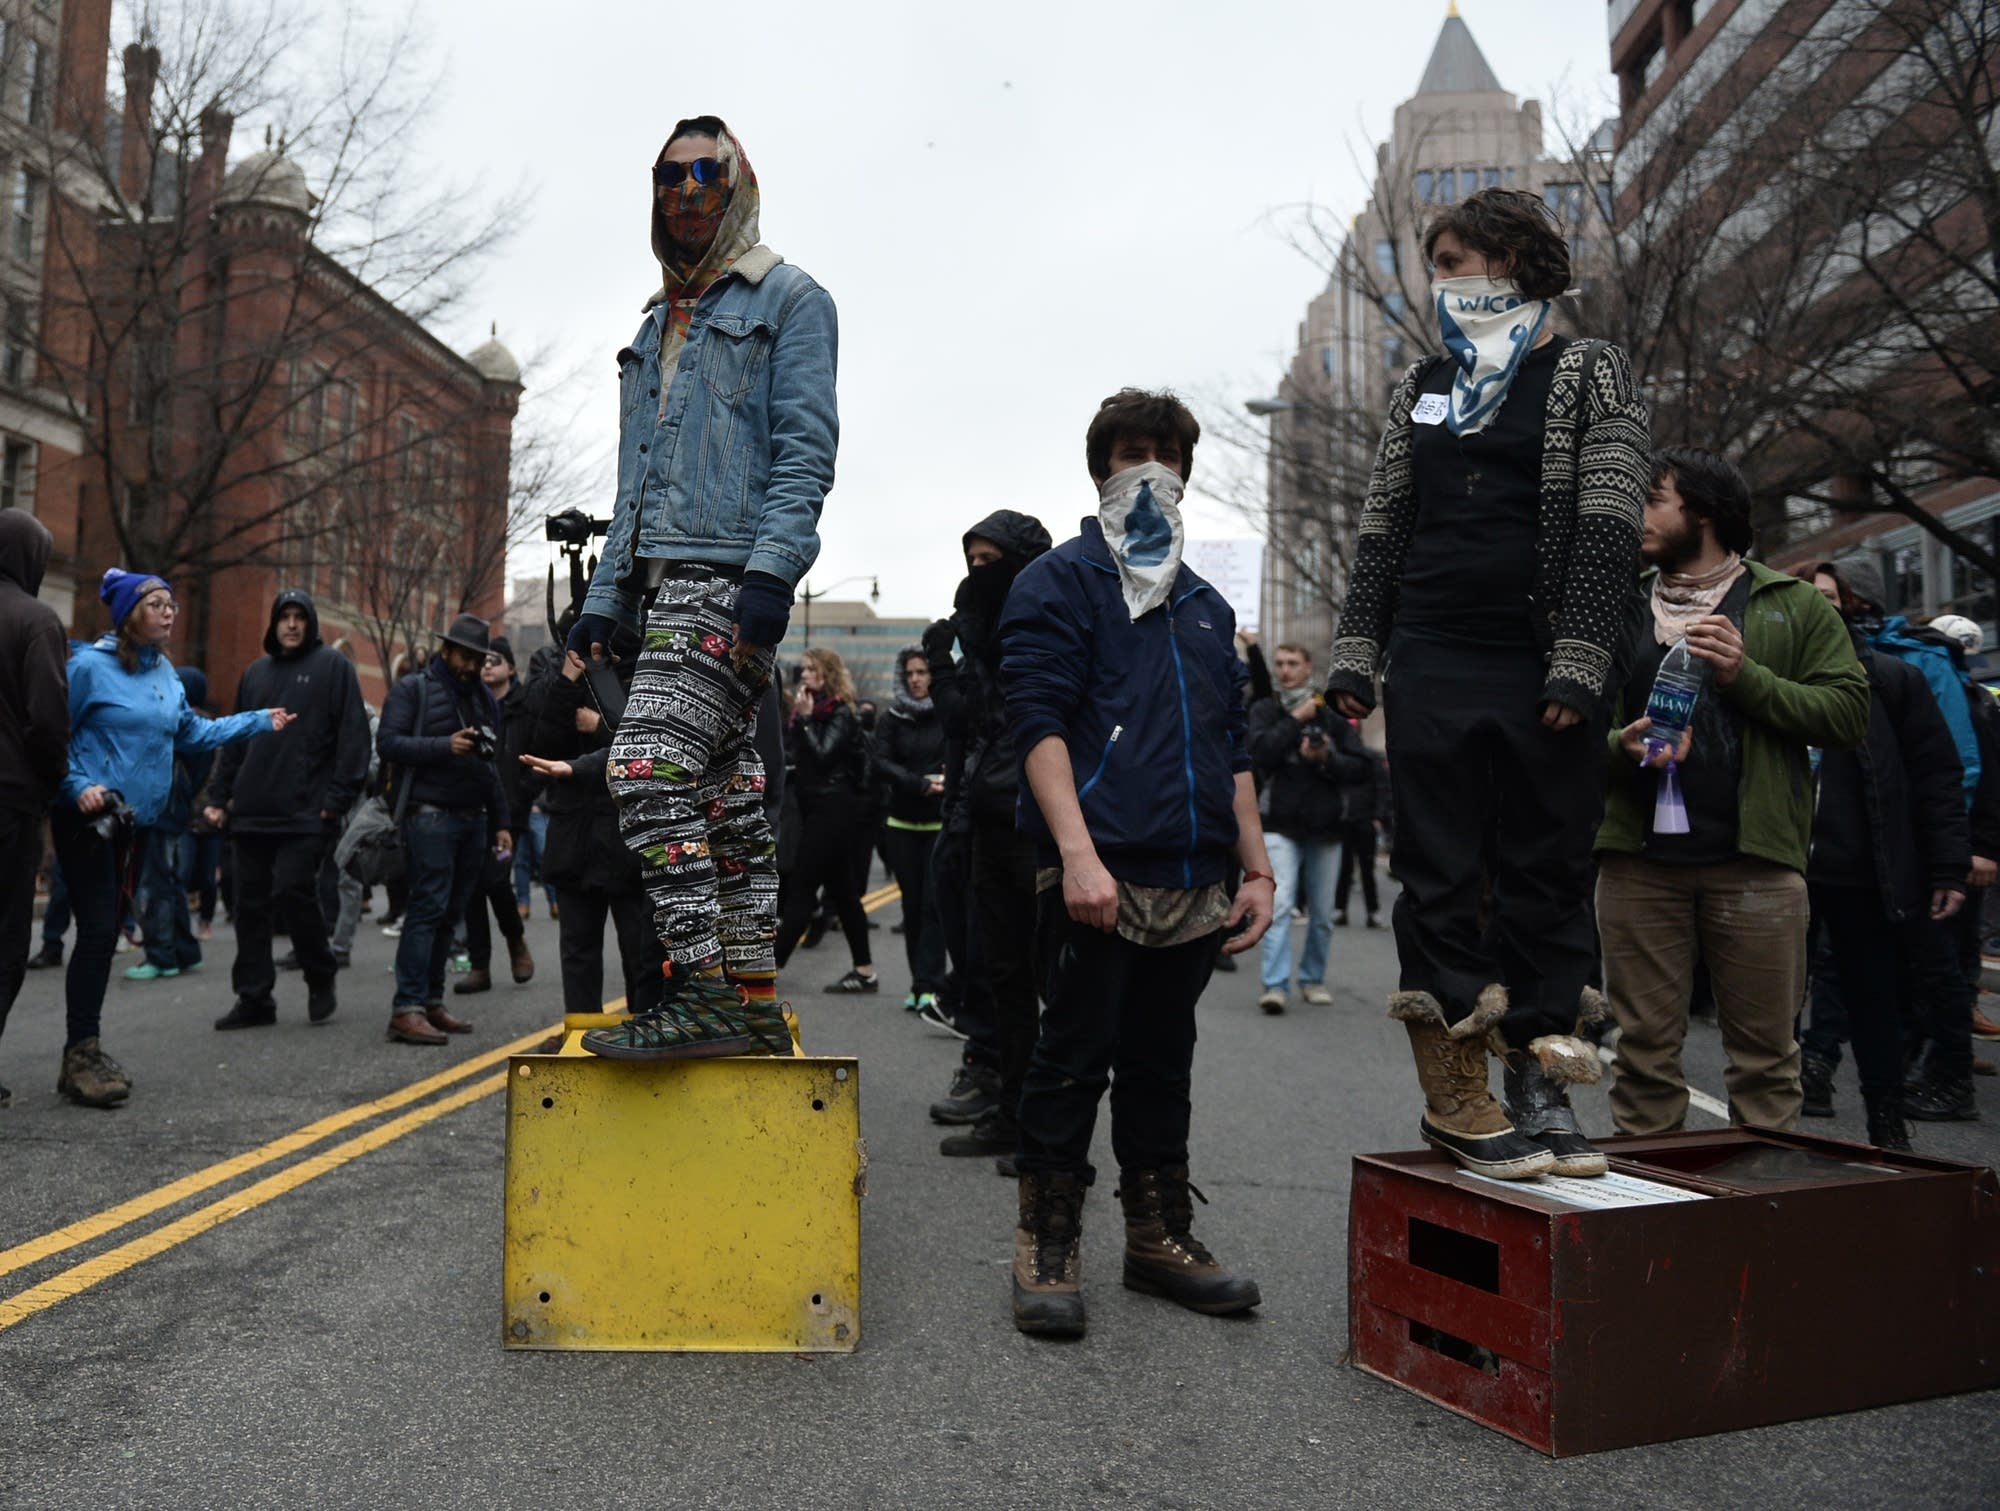 Protesters block a street after the inauguration.